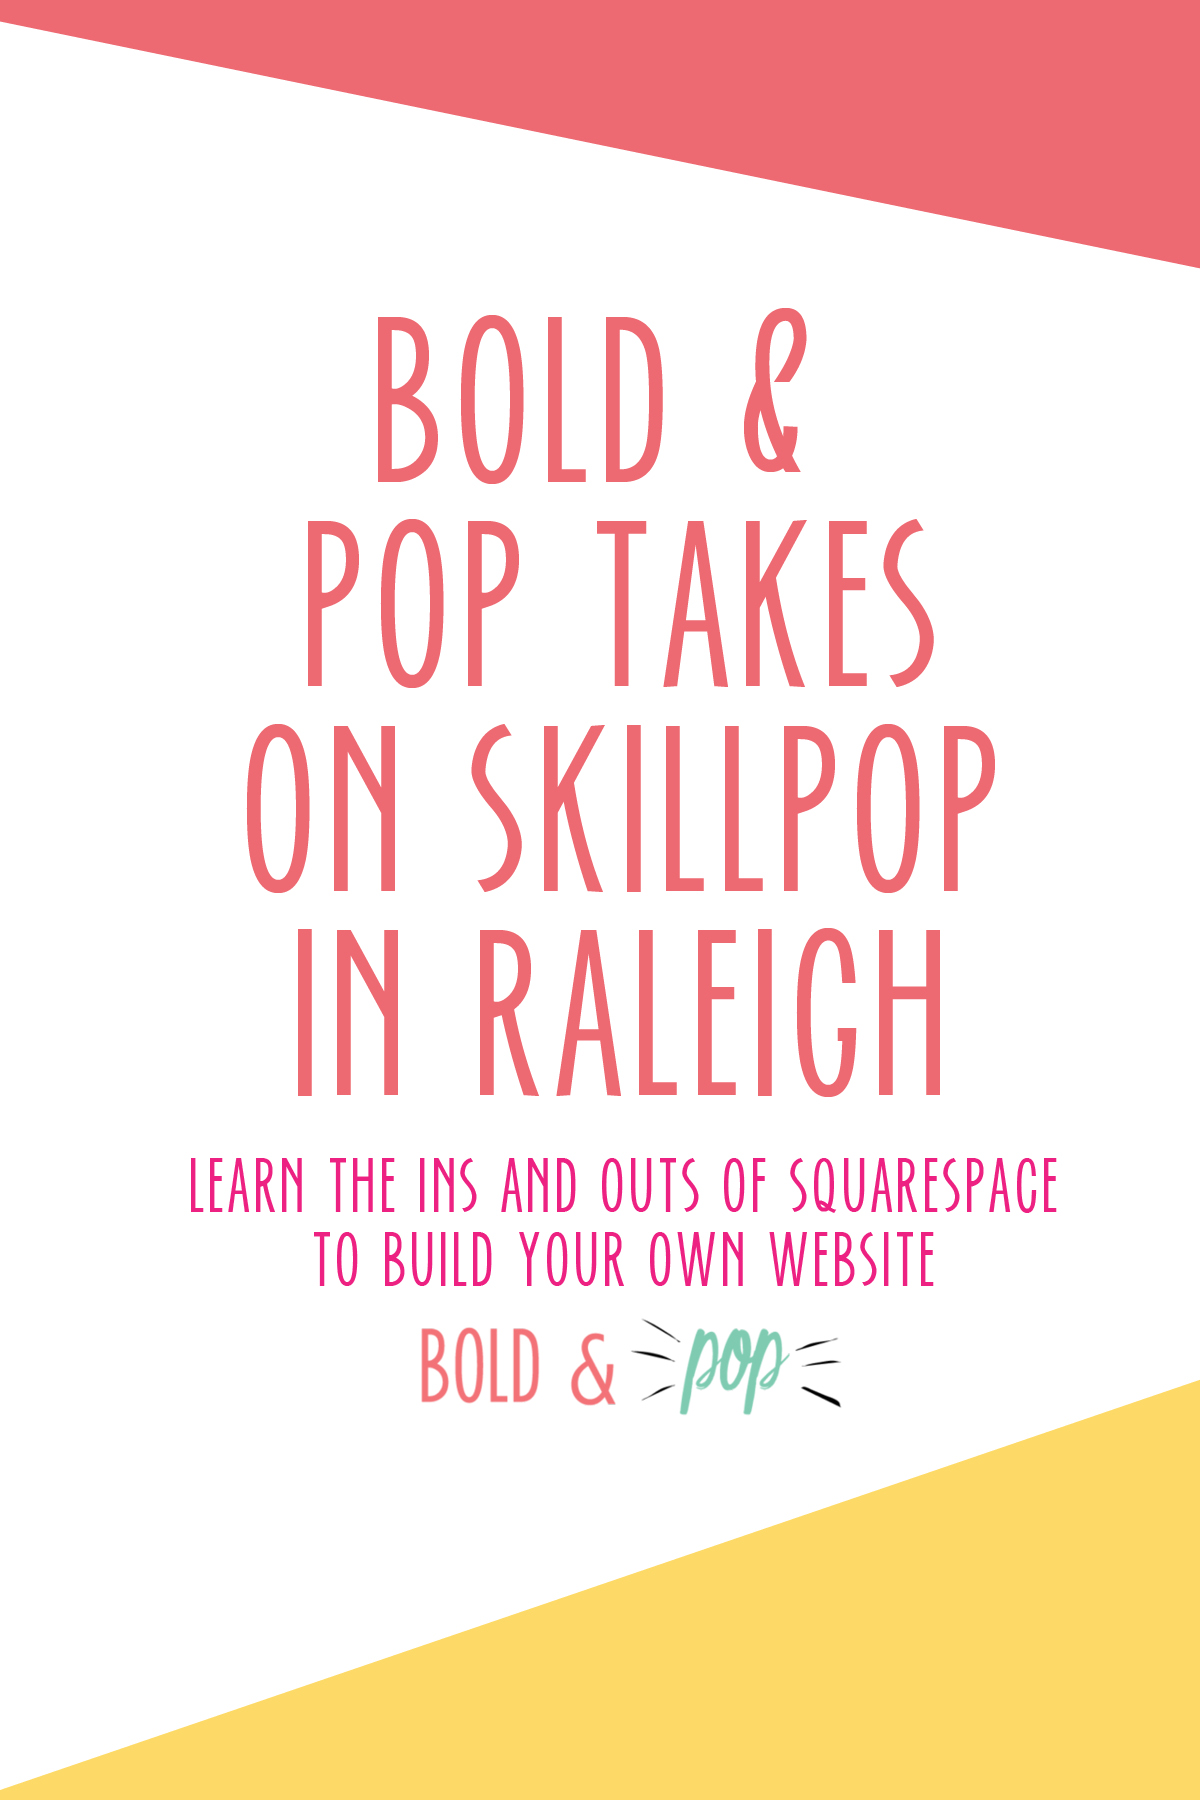 Bold & Pop : Bold & Pop takes on SkillPop in Raleigh